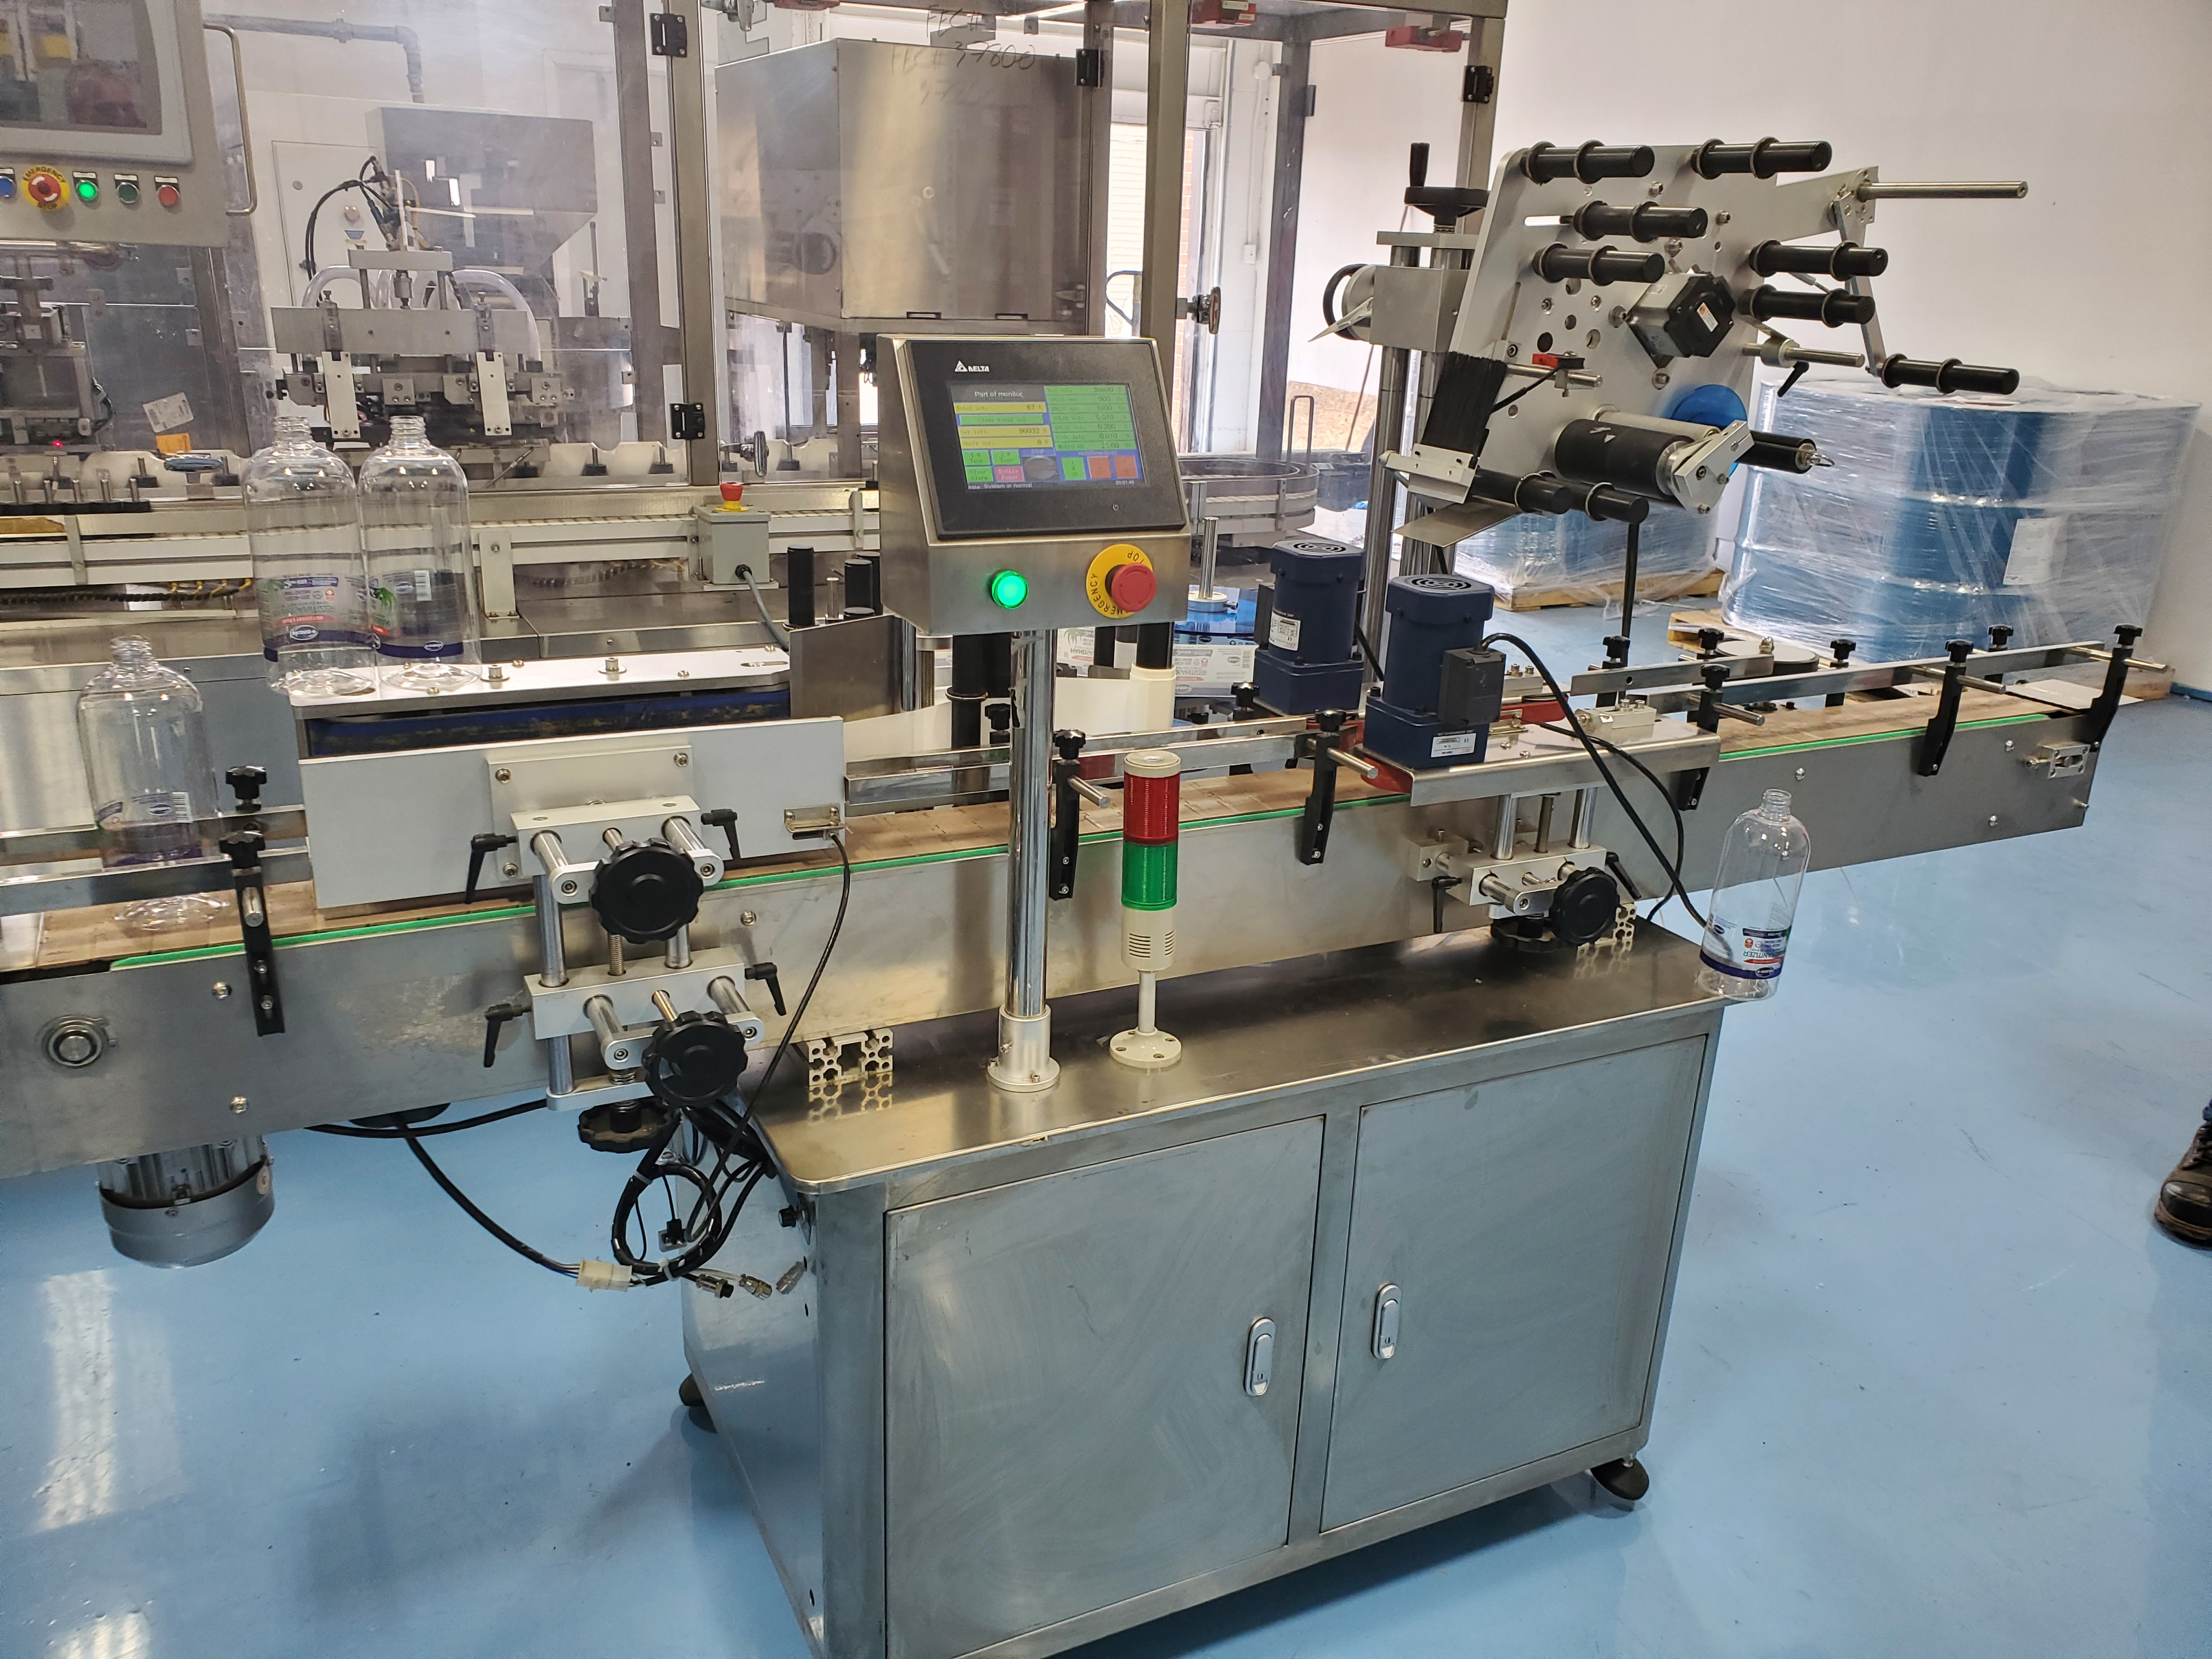 Grepack Packing Machine Integrated Wrap Around and Top Down Labeler with Conveyor - Image 2 of 8